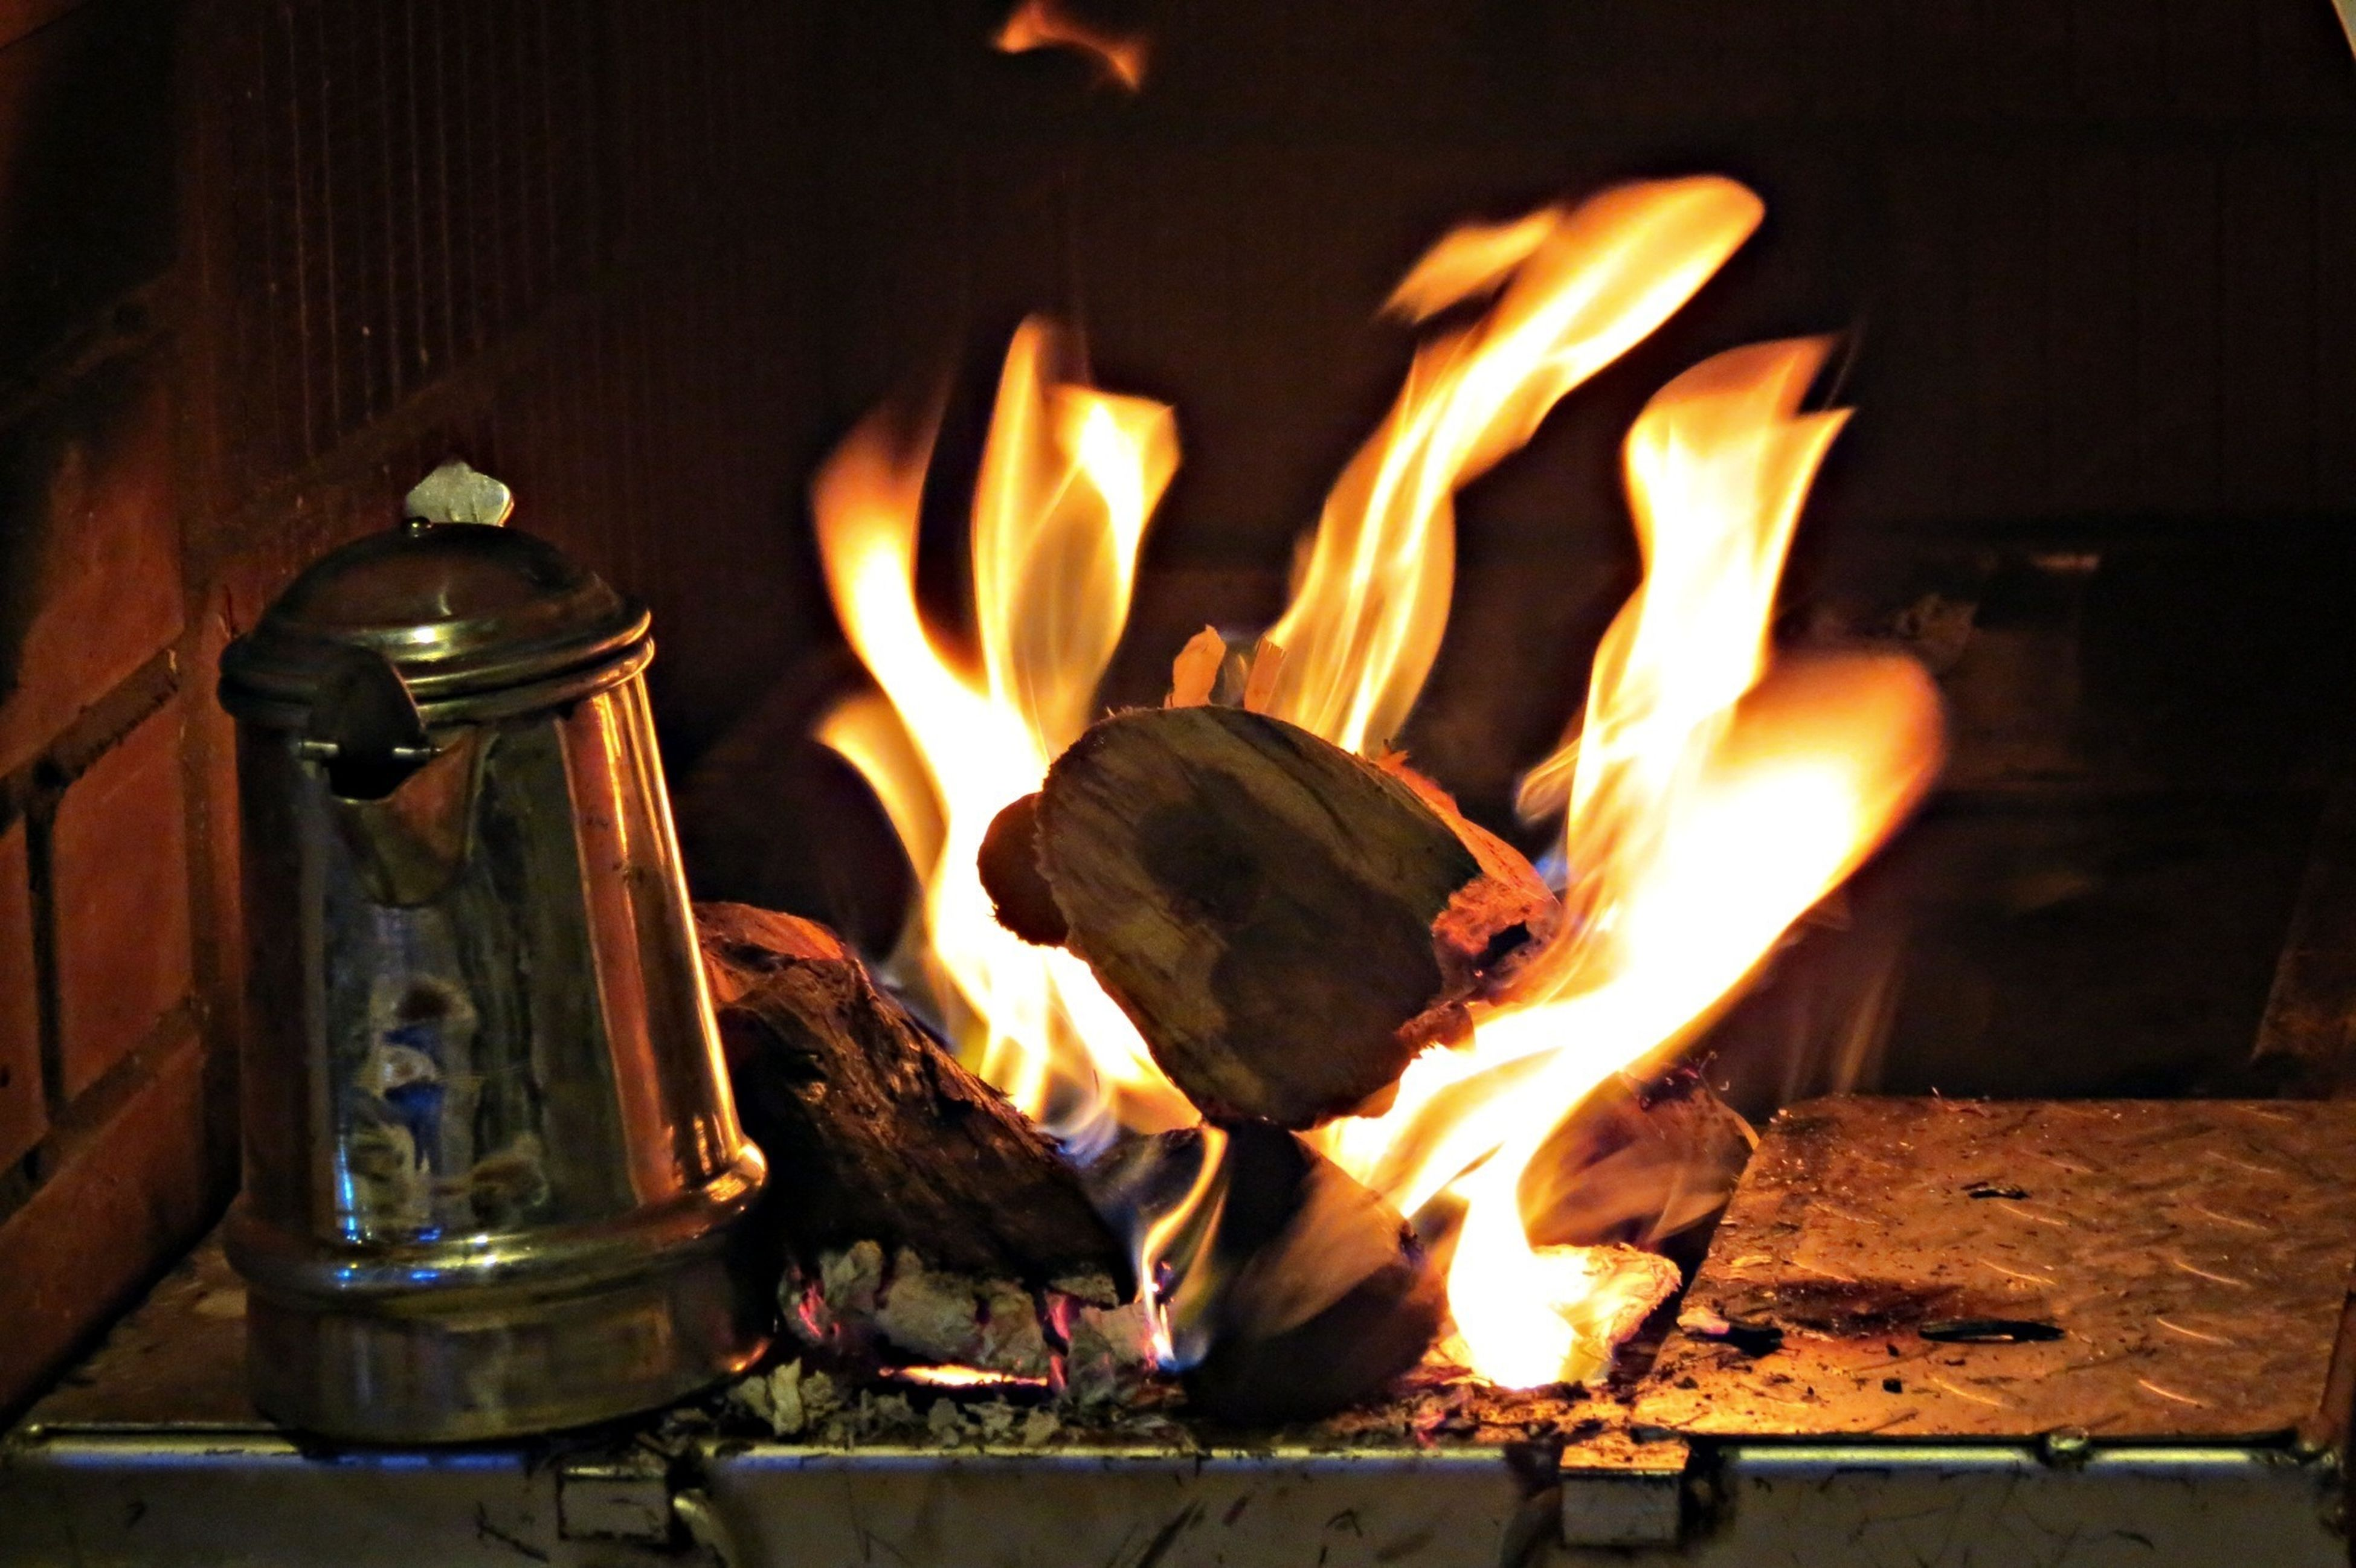 flame, burning, heat - temperature, fire - natural phenomenon, indoors, glowing, fire, firewood, close-up, heat, candle, bonfire, barbecue grill, wood - material, food and drink, preparation, fireplace, cooking, coal, campfire